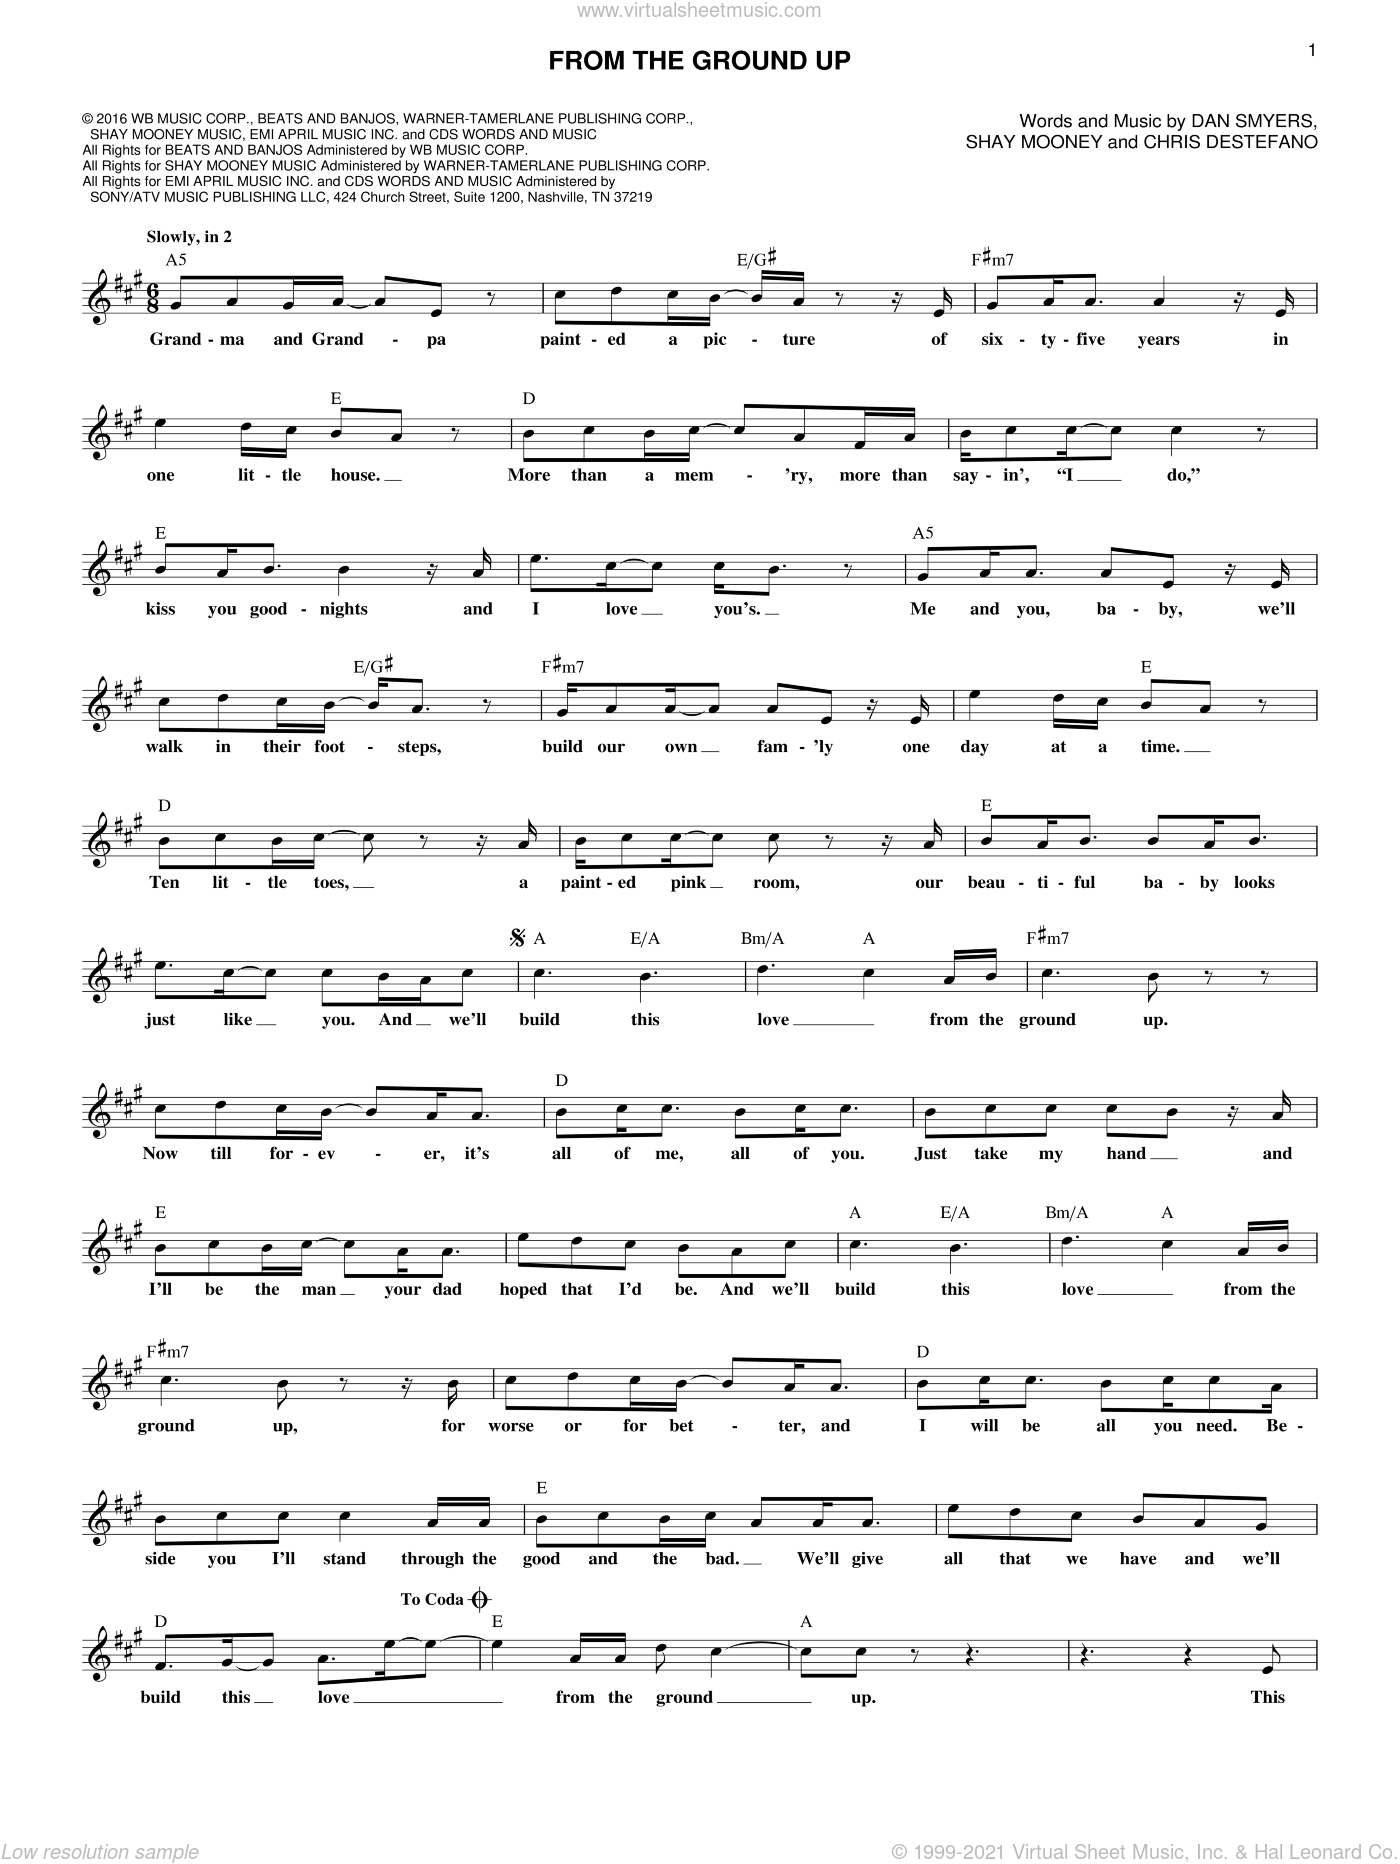 From The Ground Up sheet music for voice and other instruments (fake book) by Dan & Shay, Chris Destefano, Dan Smyers and Shay Mooney, wedding score, intermediate skill level